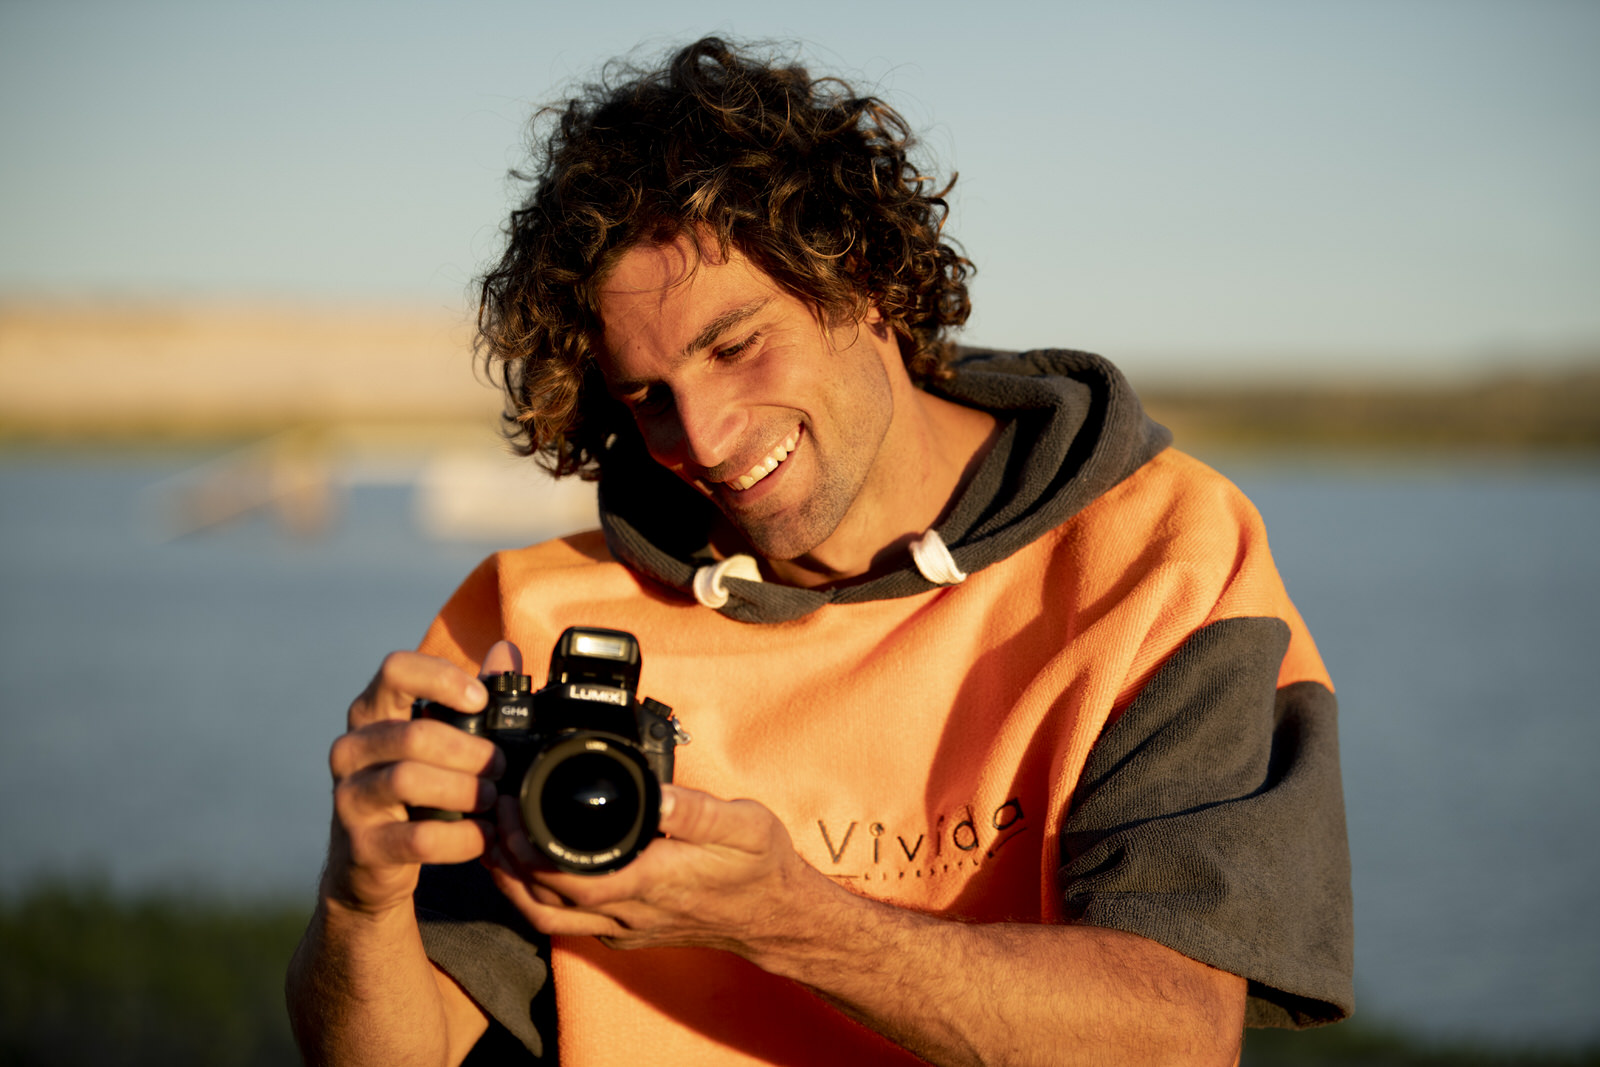 Antoine Verville - CANADA / MEXICO Kiteboarding - Videography - TravelHas helped out enormously particularly in Canada and Baja California. Always happy to give a helping hand to help with Vivida photoshoots, product ideas, marketing initiatives and introductions for which Vivida is so grateful.